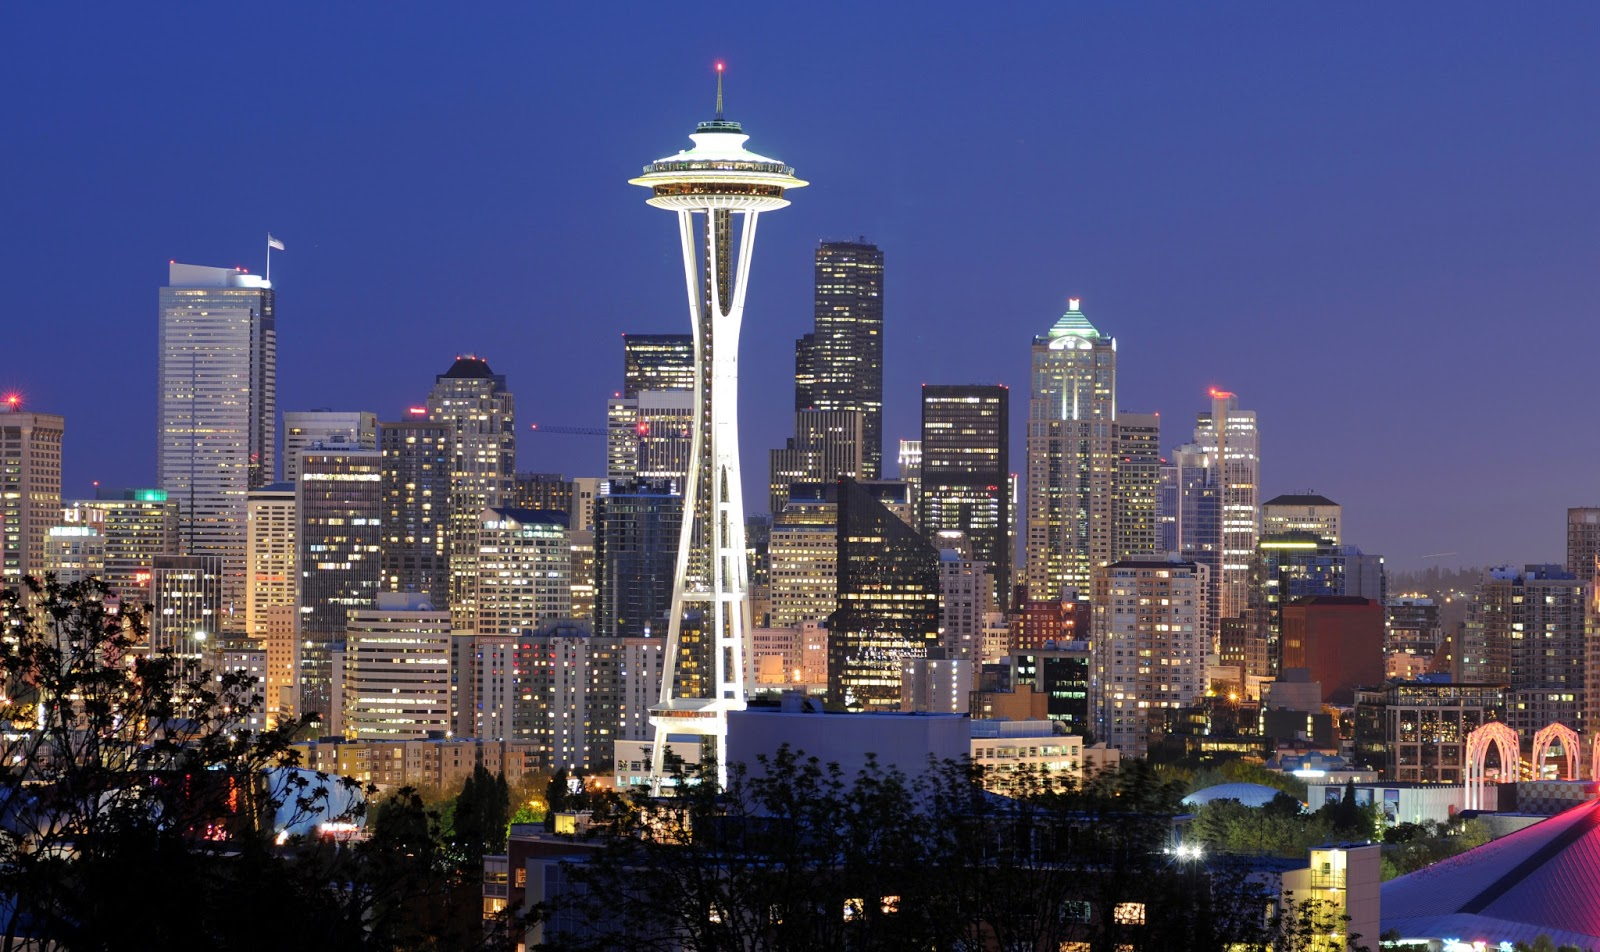 Travel & Adventures: Seattle. A voyage to Seattle ...